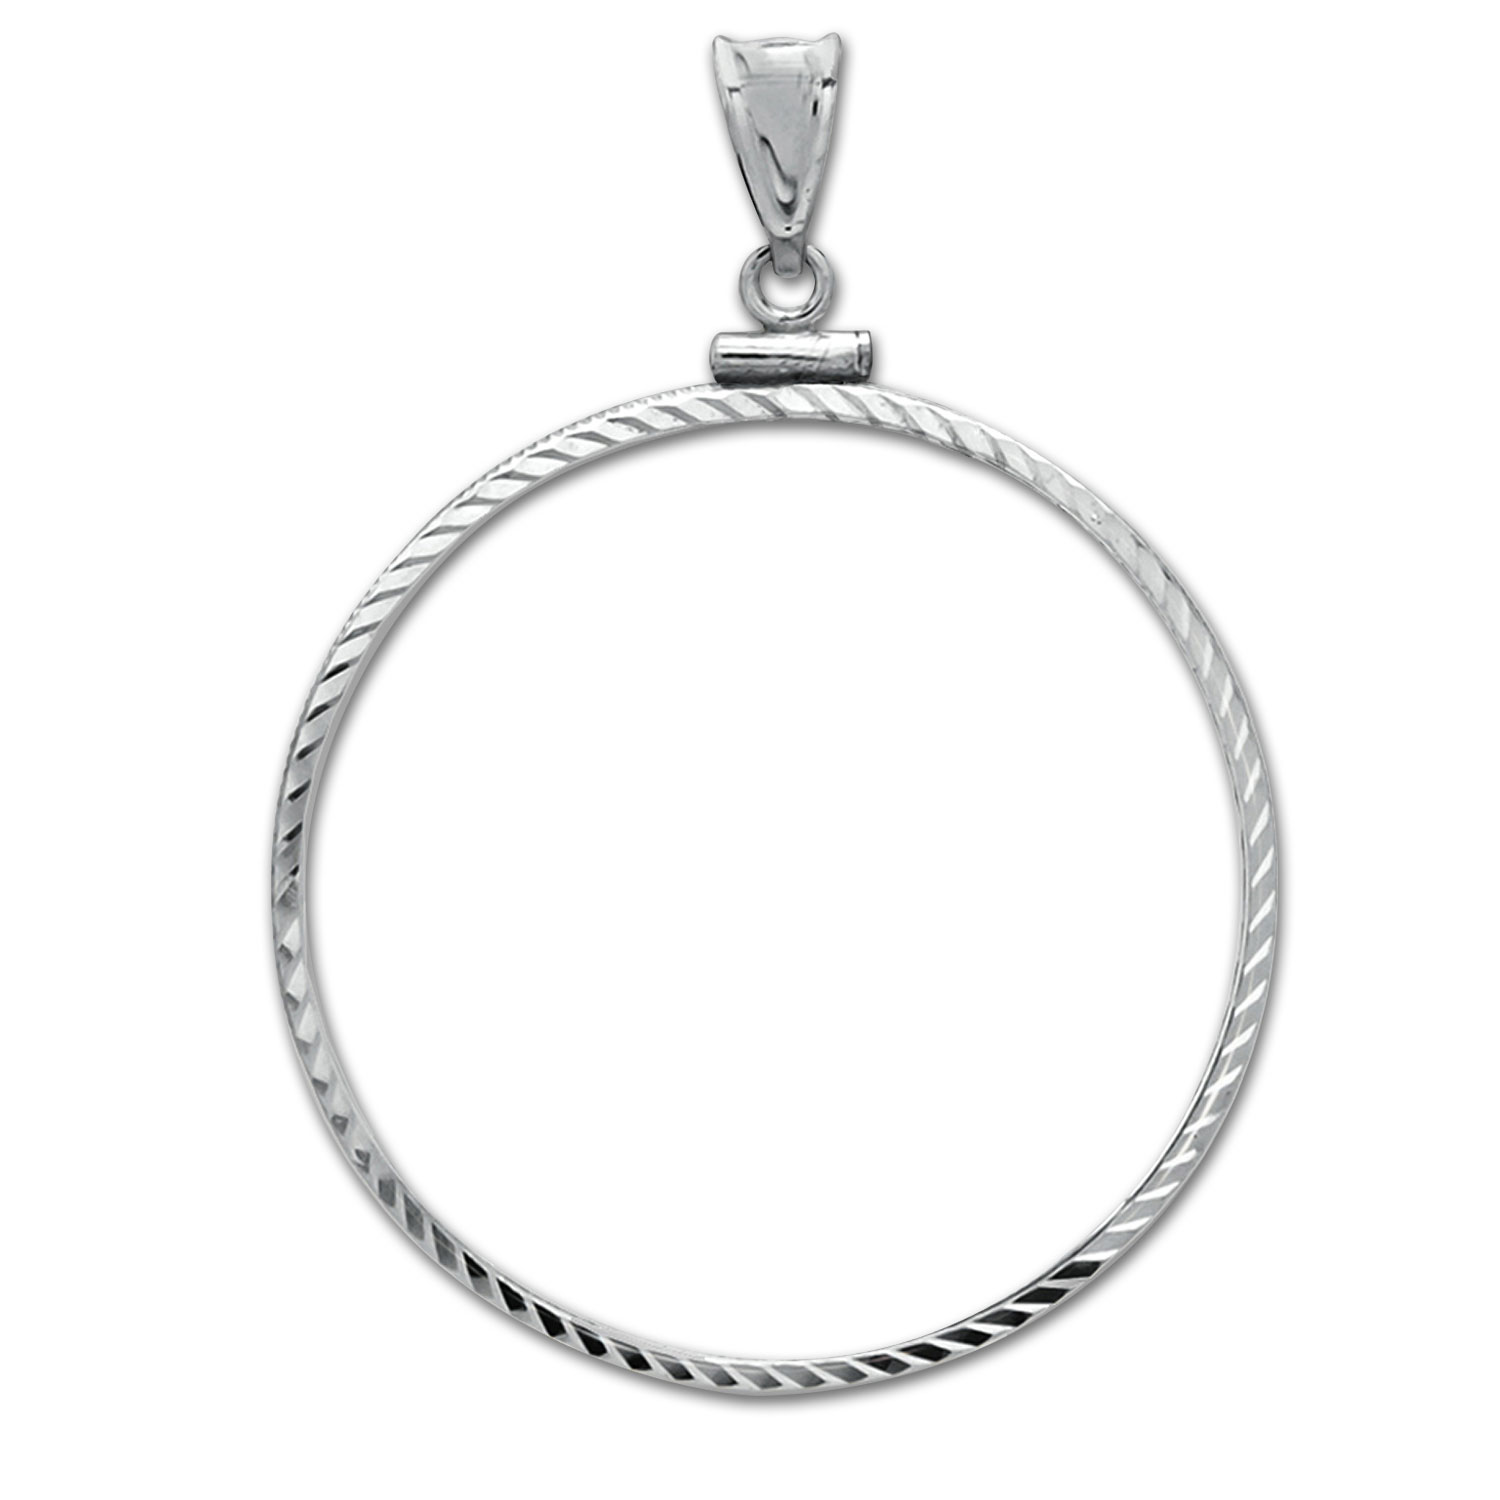 Sterling Silver Screw Top Diamond Cut Coin Bezel - 38.2mm